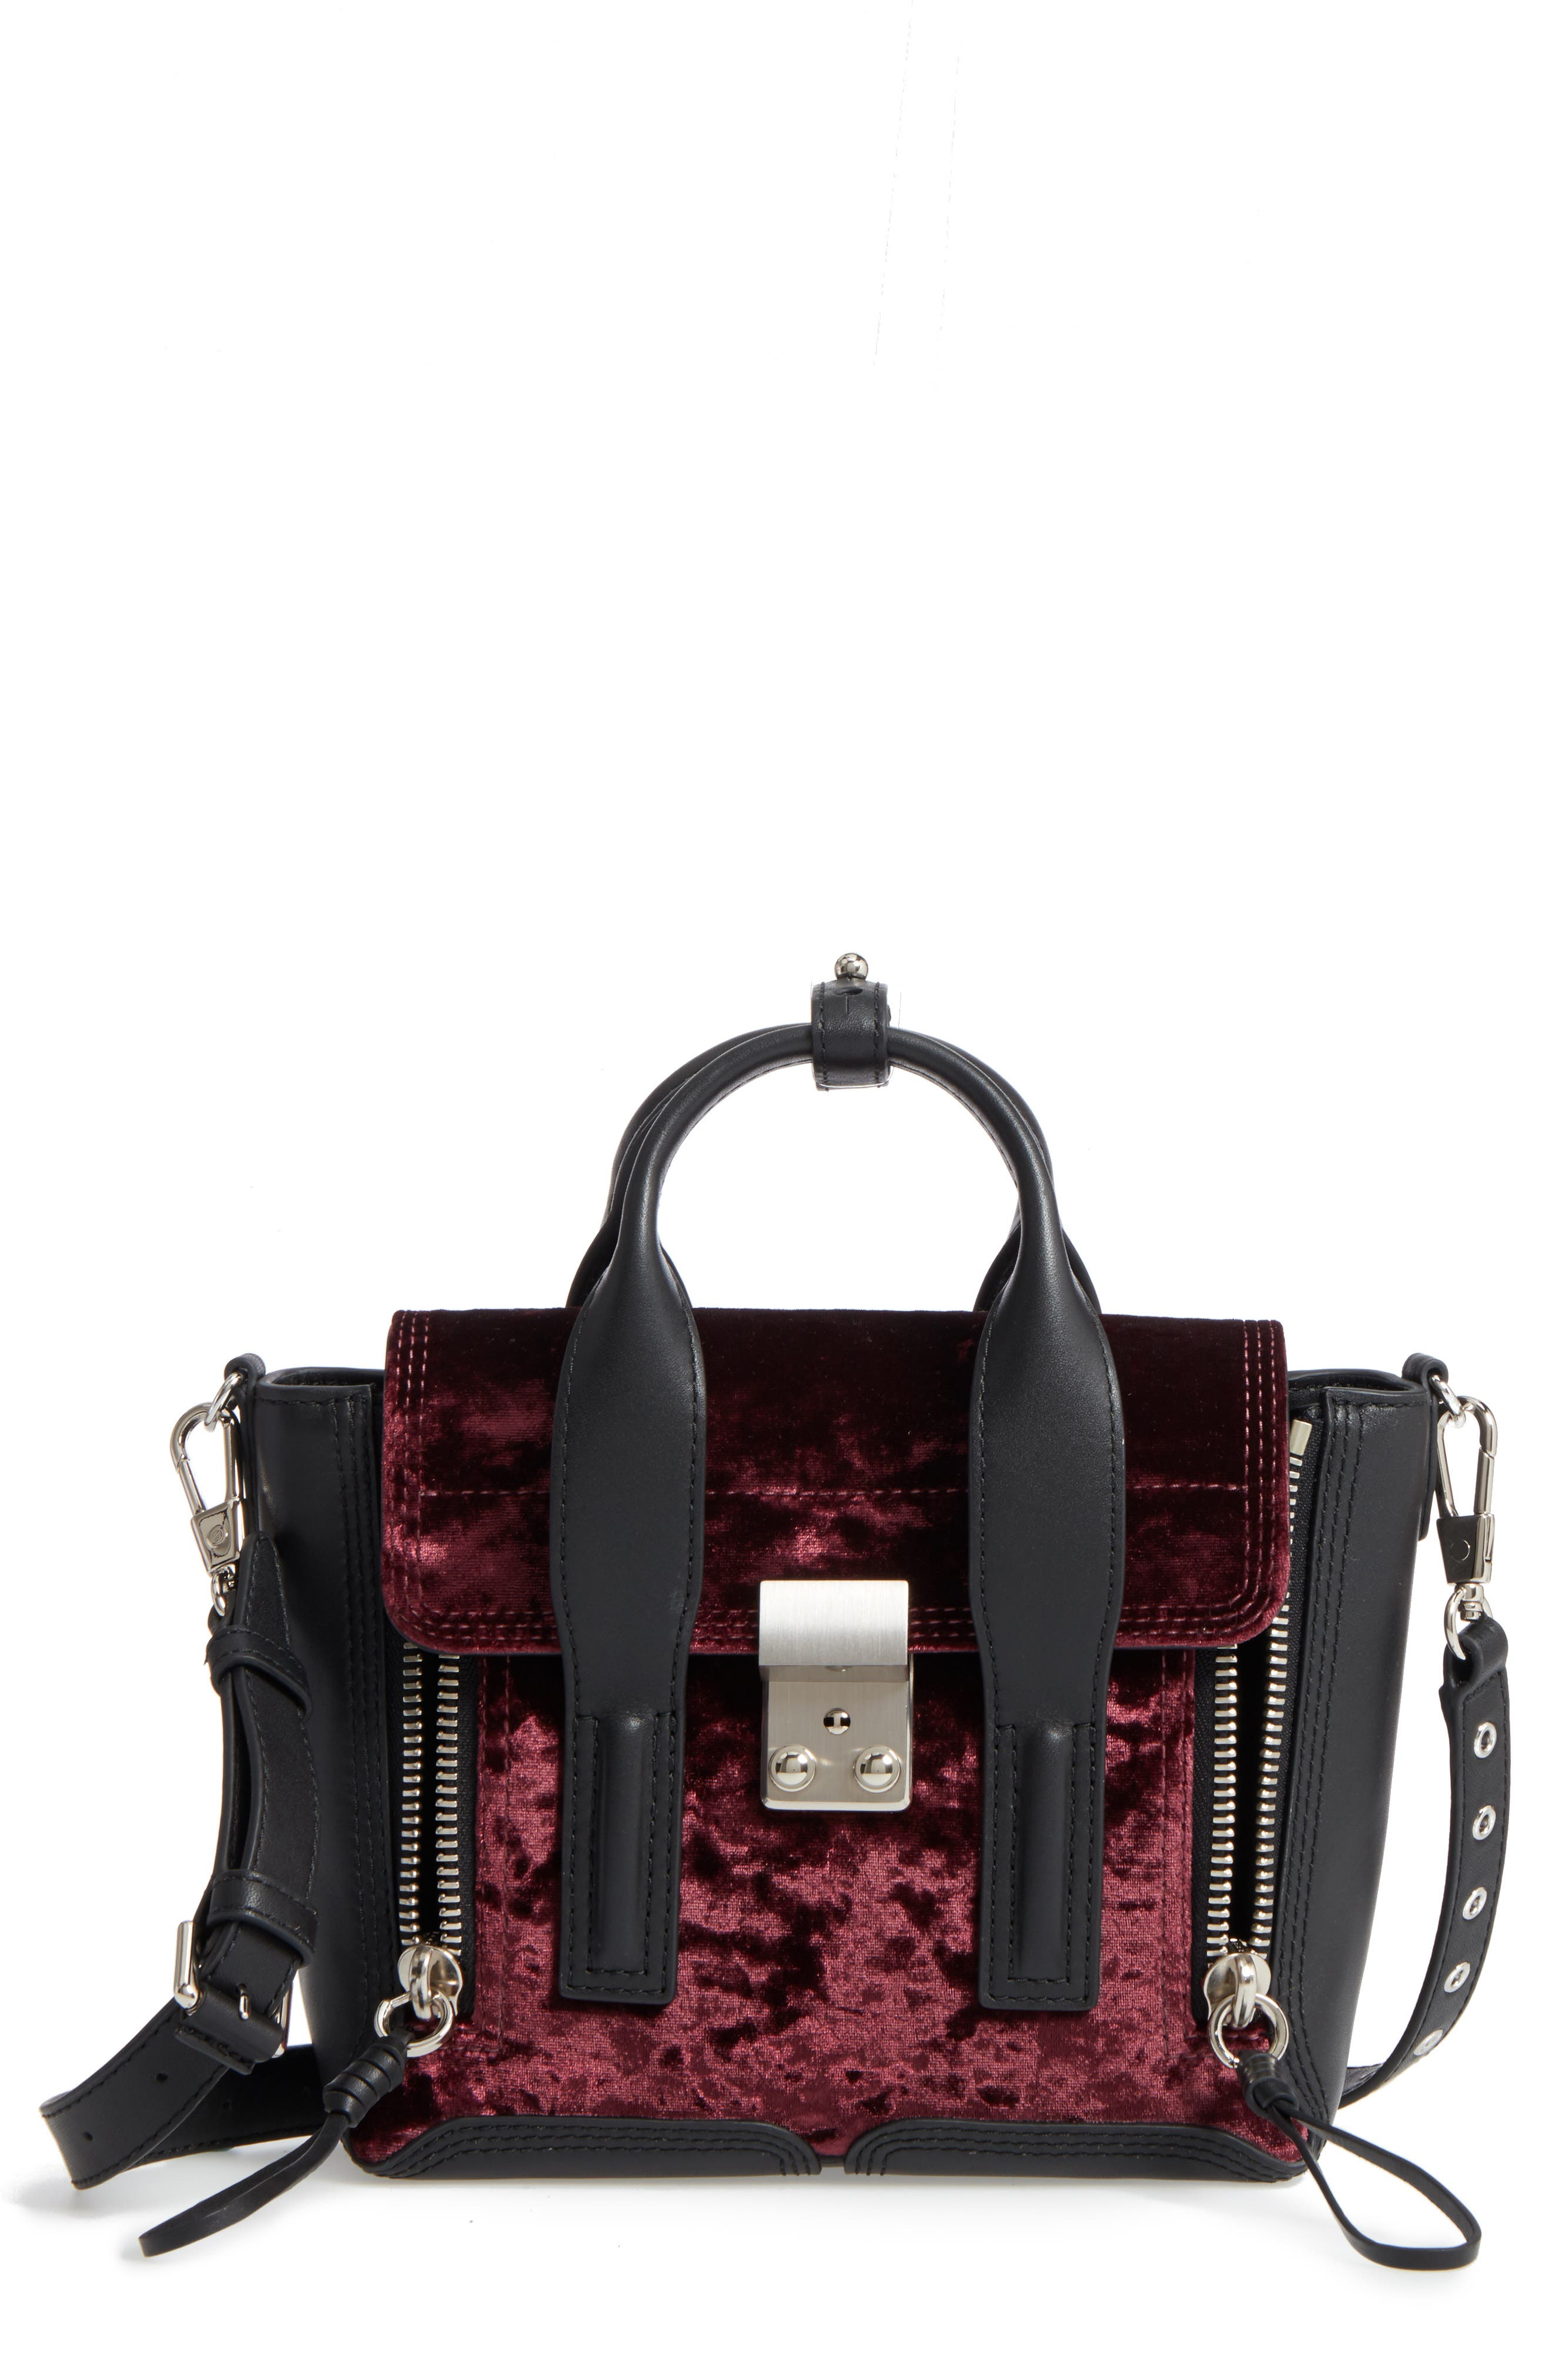 Alternate Image 1 Selected - 3.1 Phillip Lim Mini Pashli Velvet & Leather Satchel